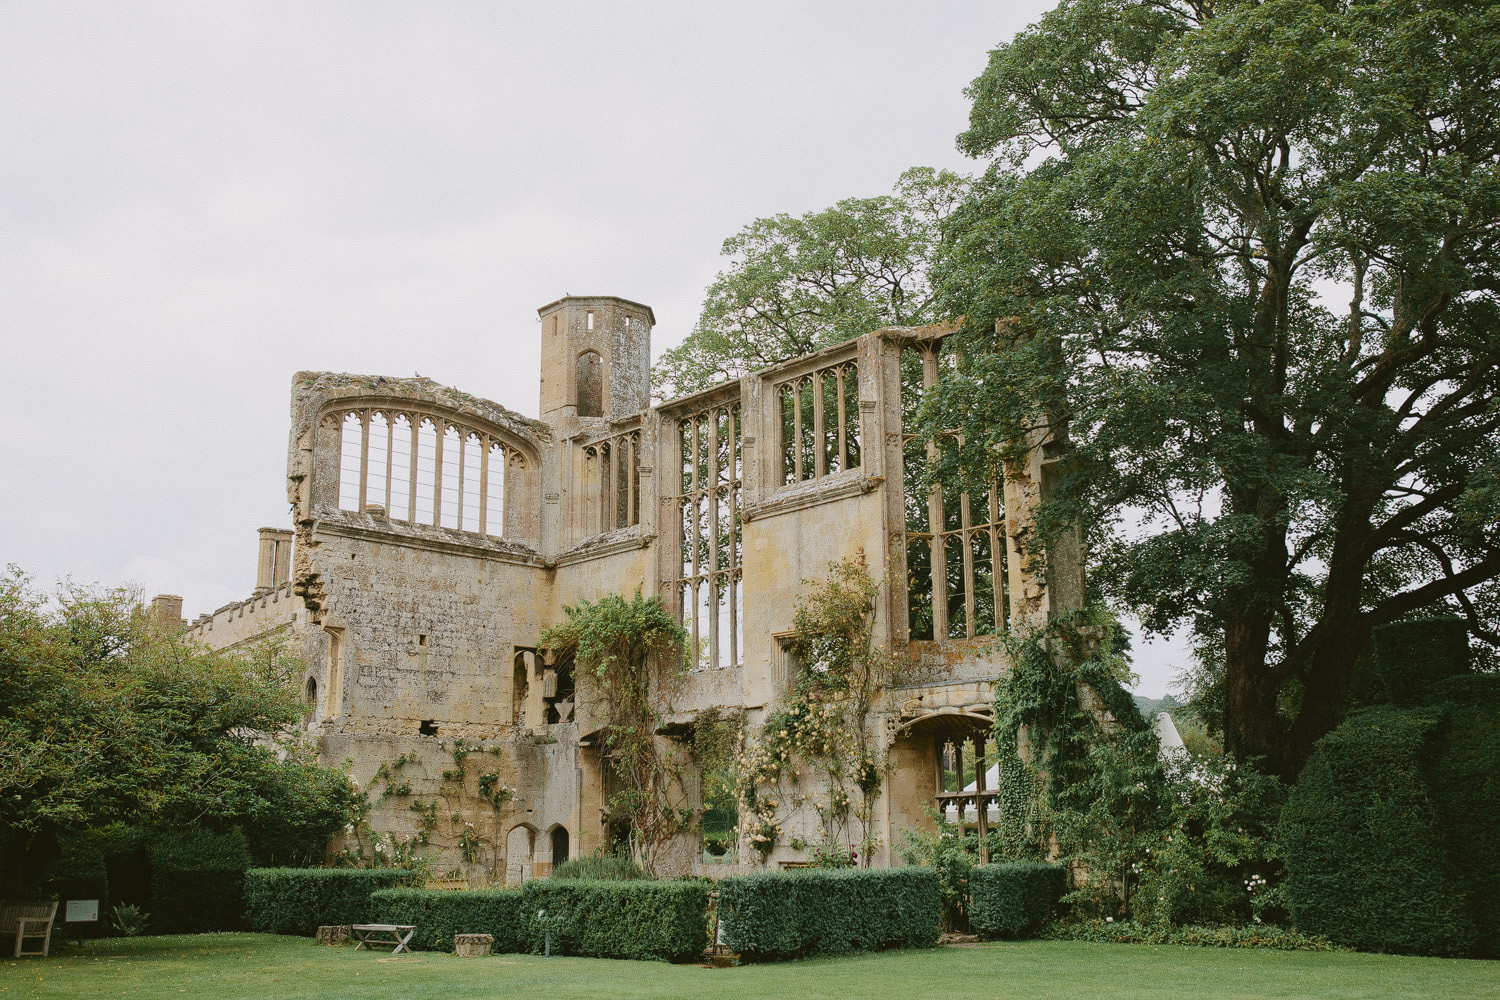 the ruins at Sudeley Castle in Winchcombe